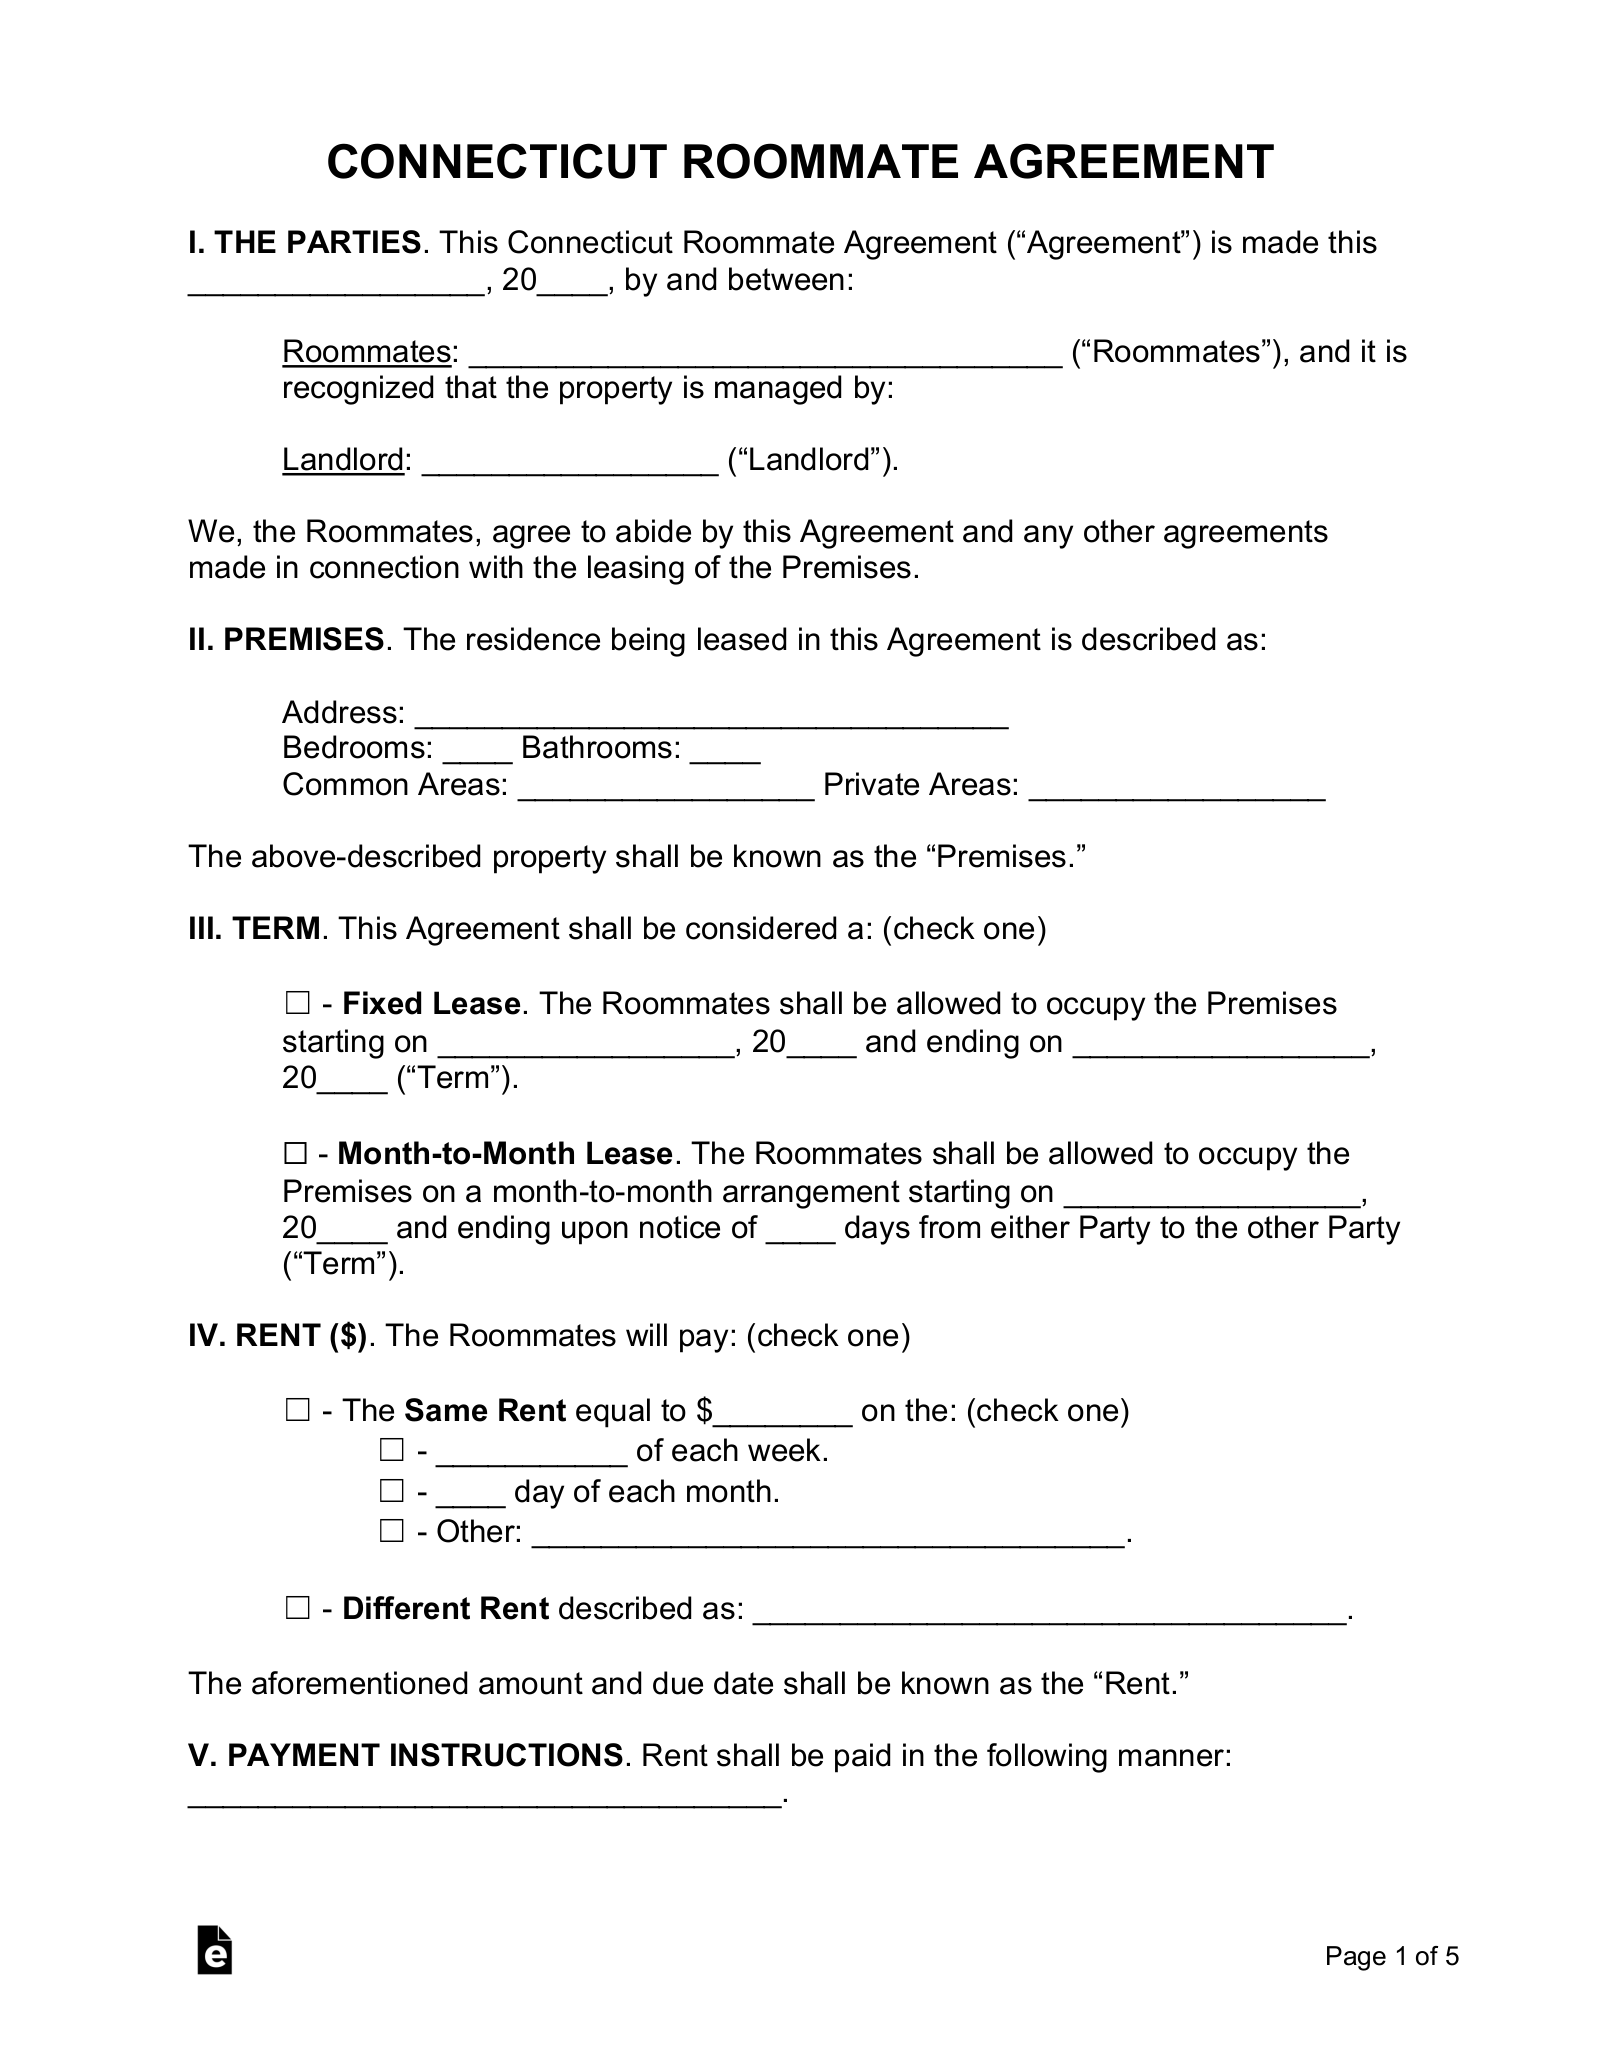 Free Connecticut Roommate Room Rental Agreement Form